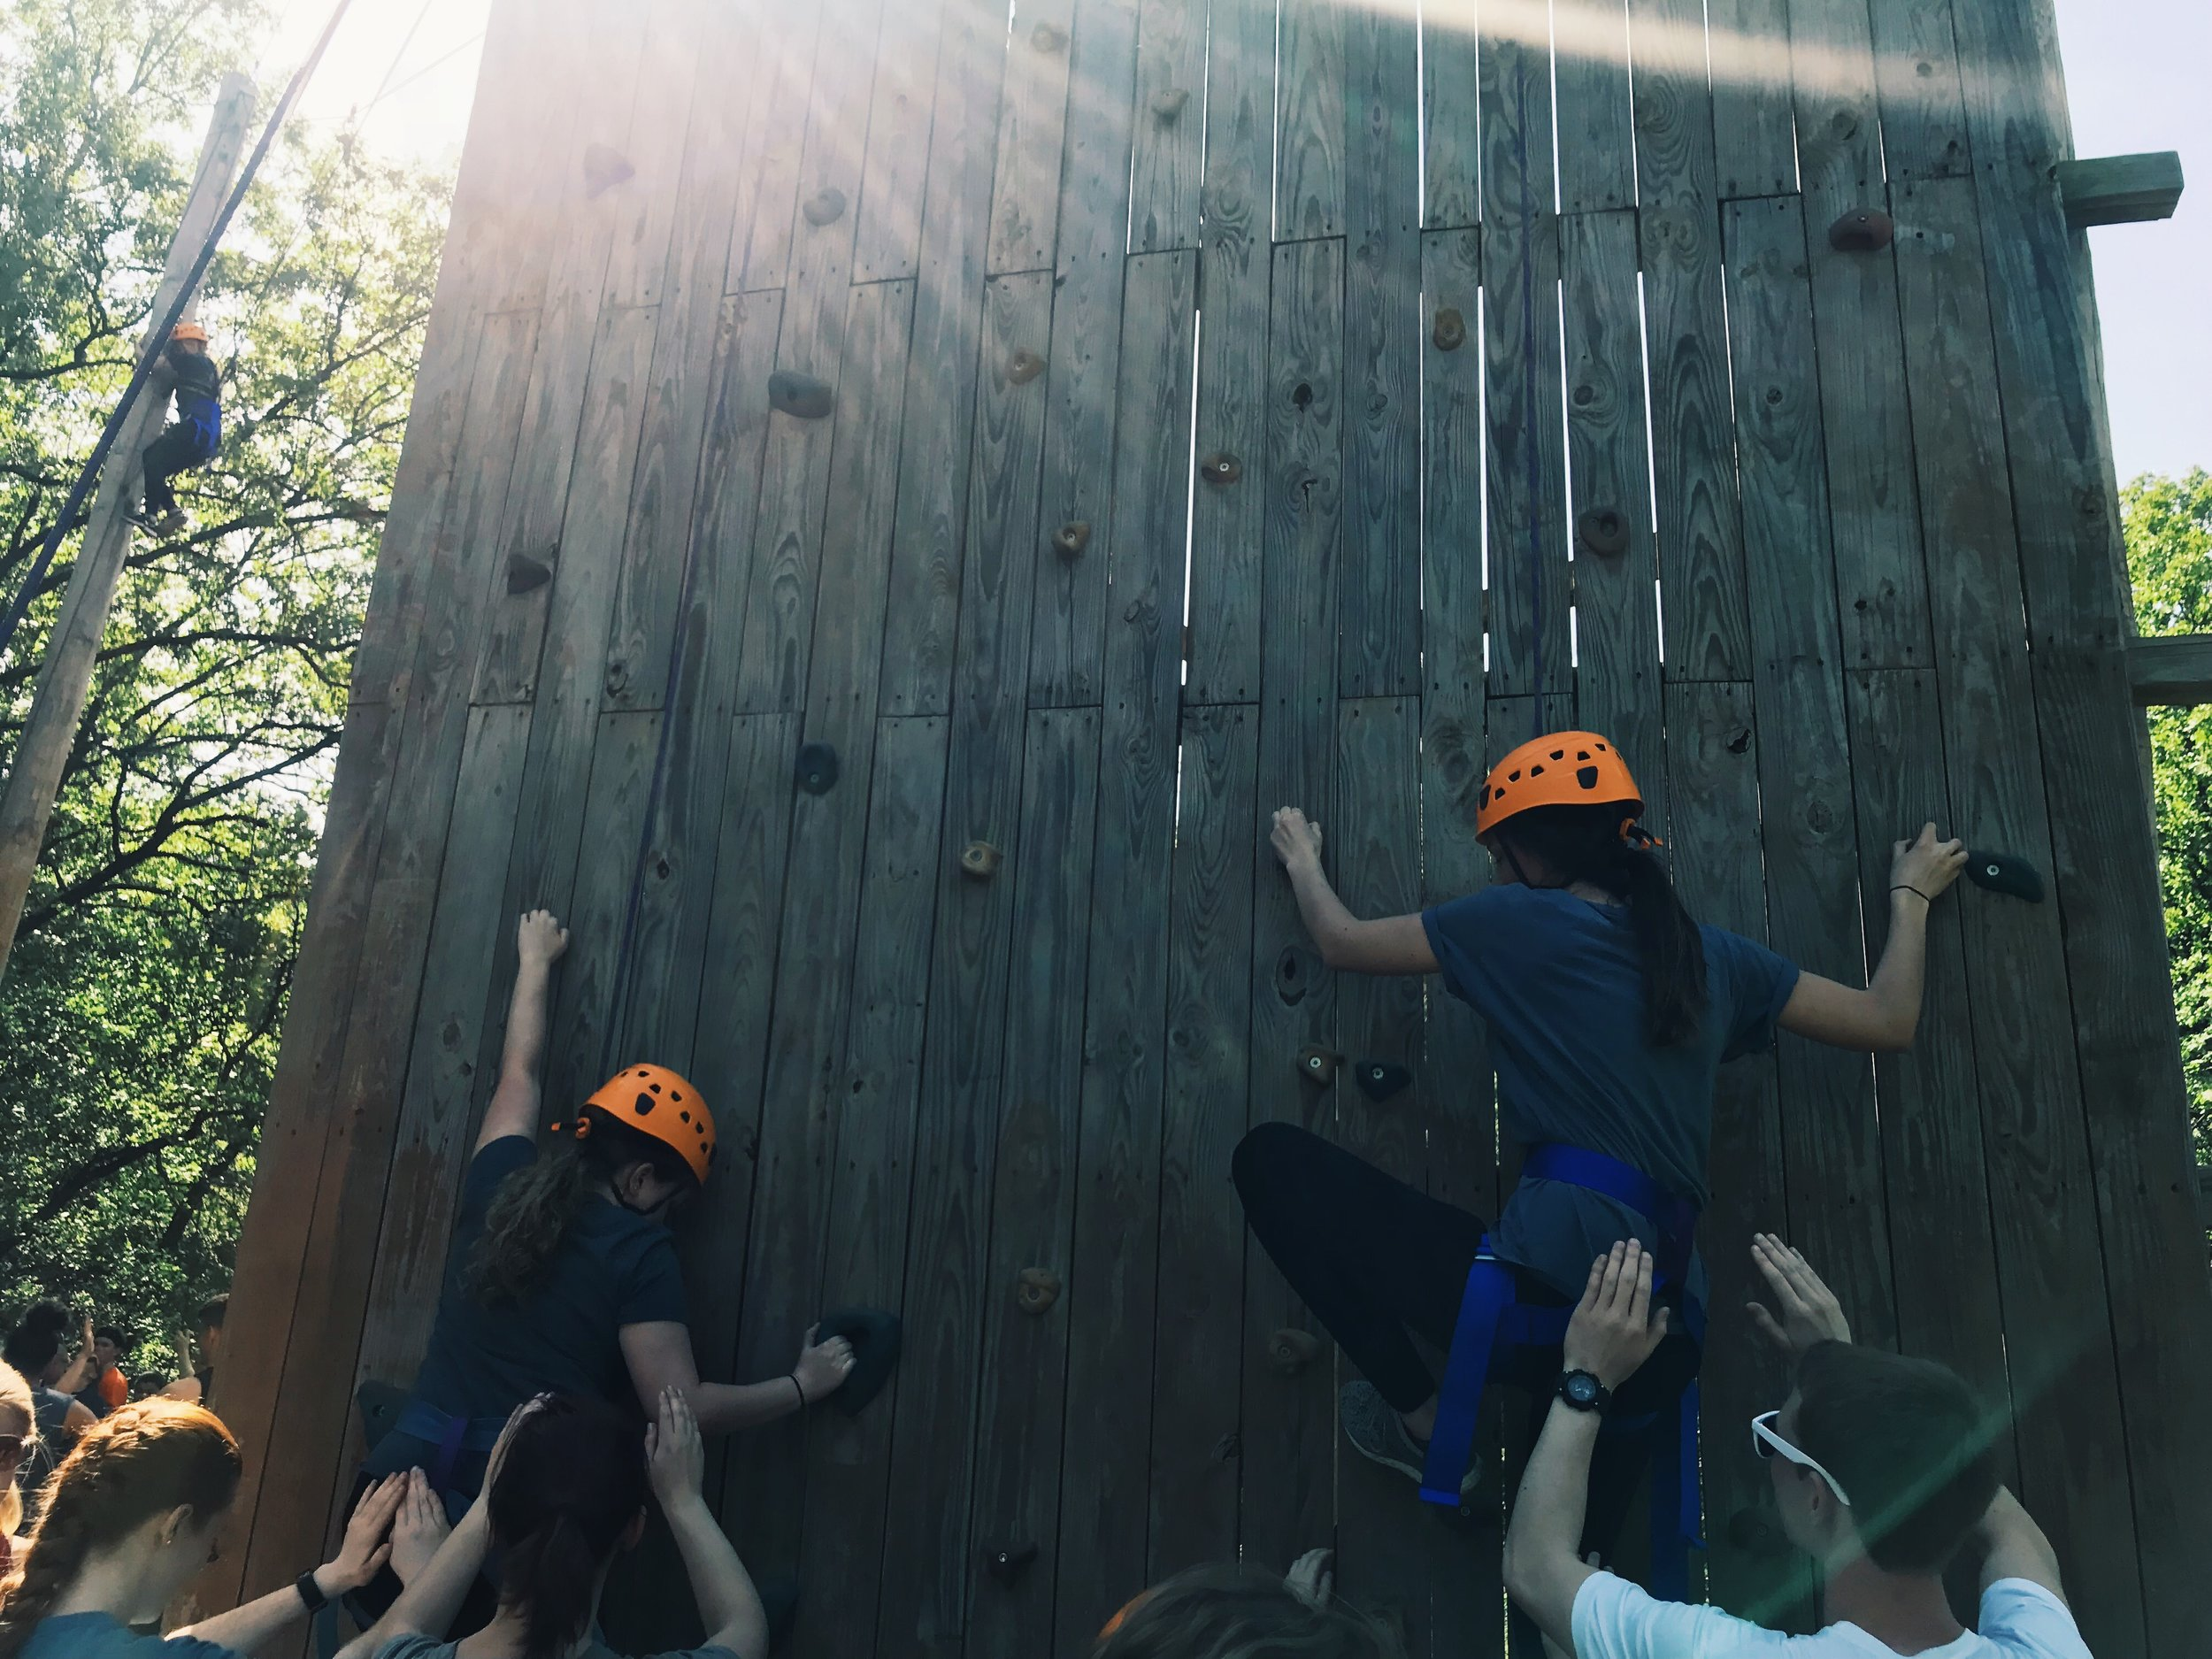 Missionaries climb the rock wall, supported and spotted by their team members and leaders.